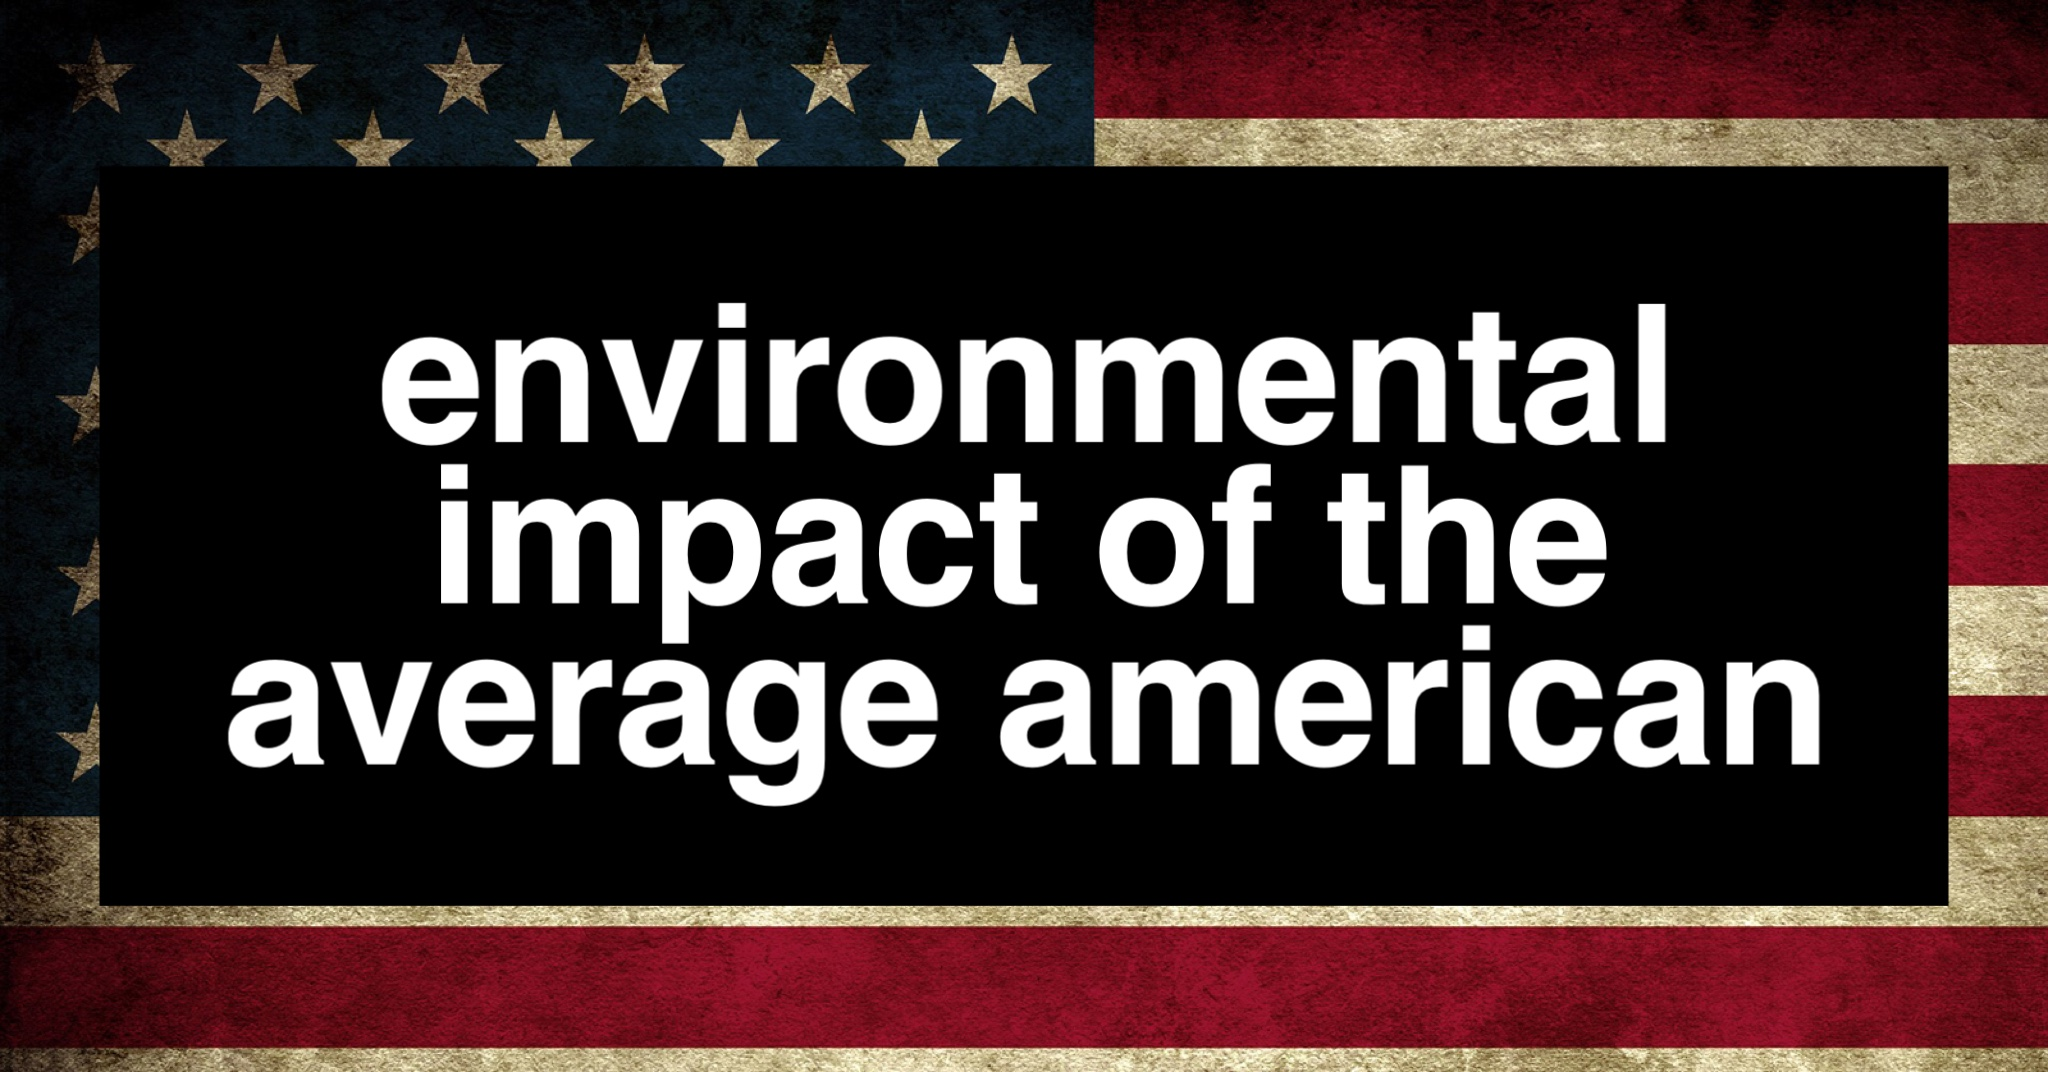 Environmental Footprint of the Average American